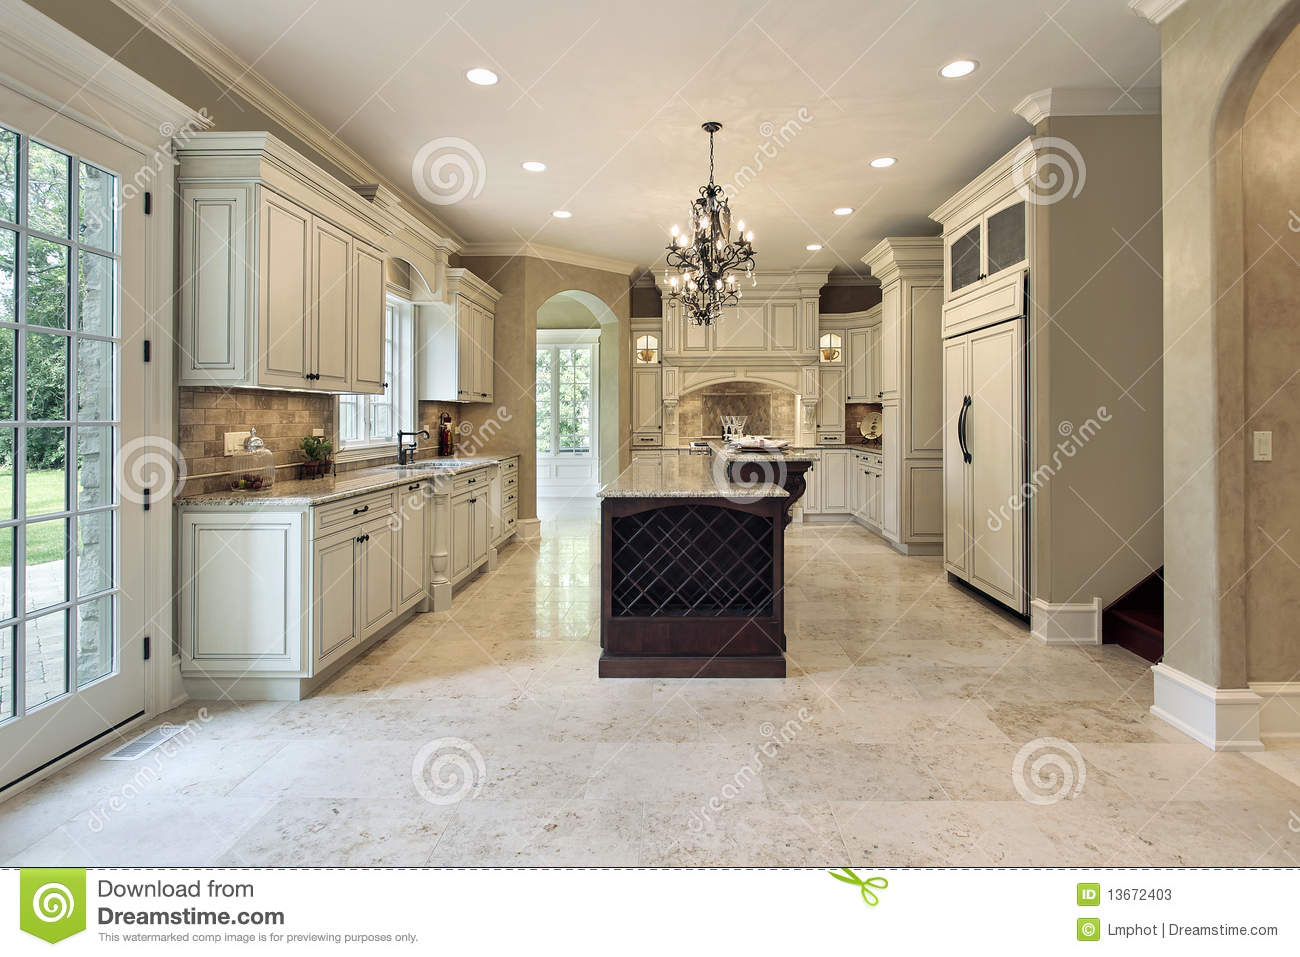 Kitchen With Double Deck Island Stock Photos Image 13672403